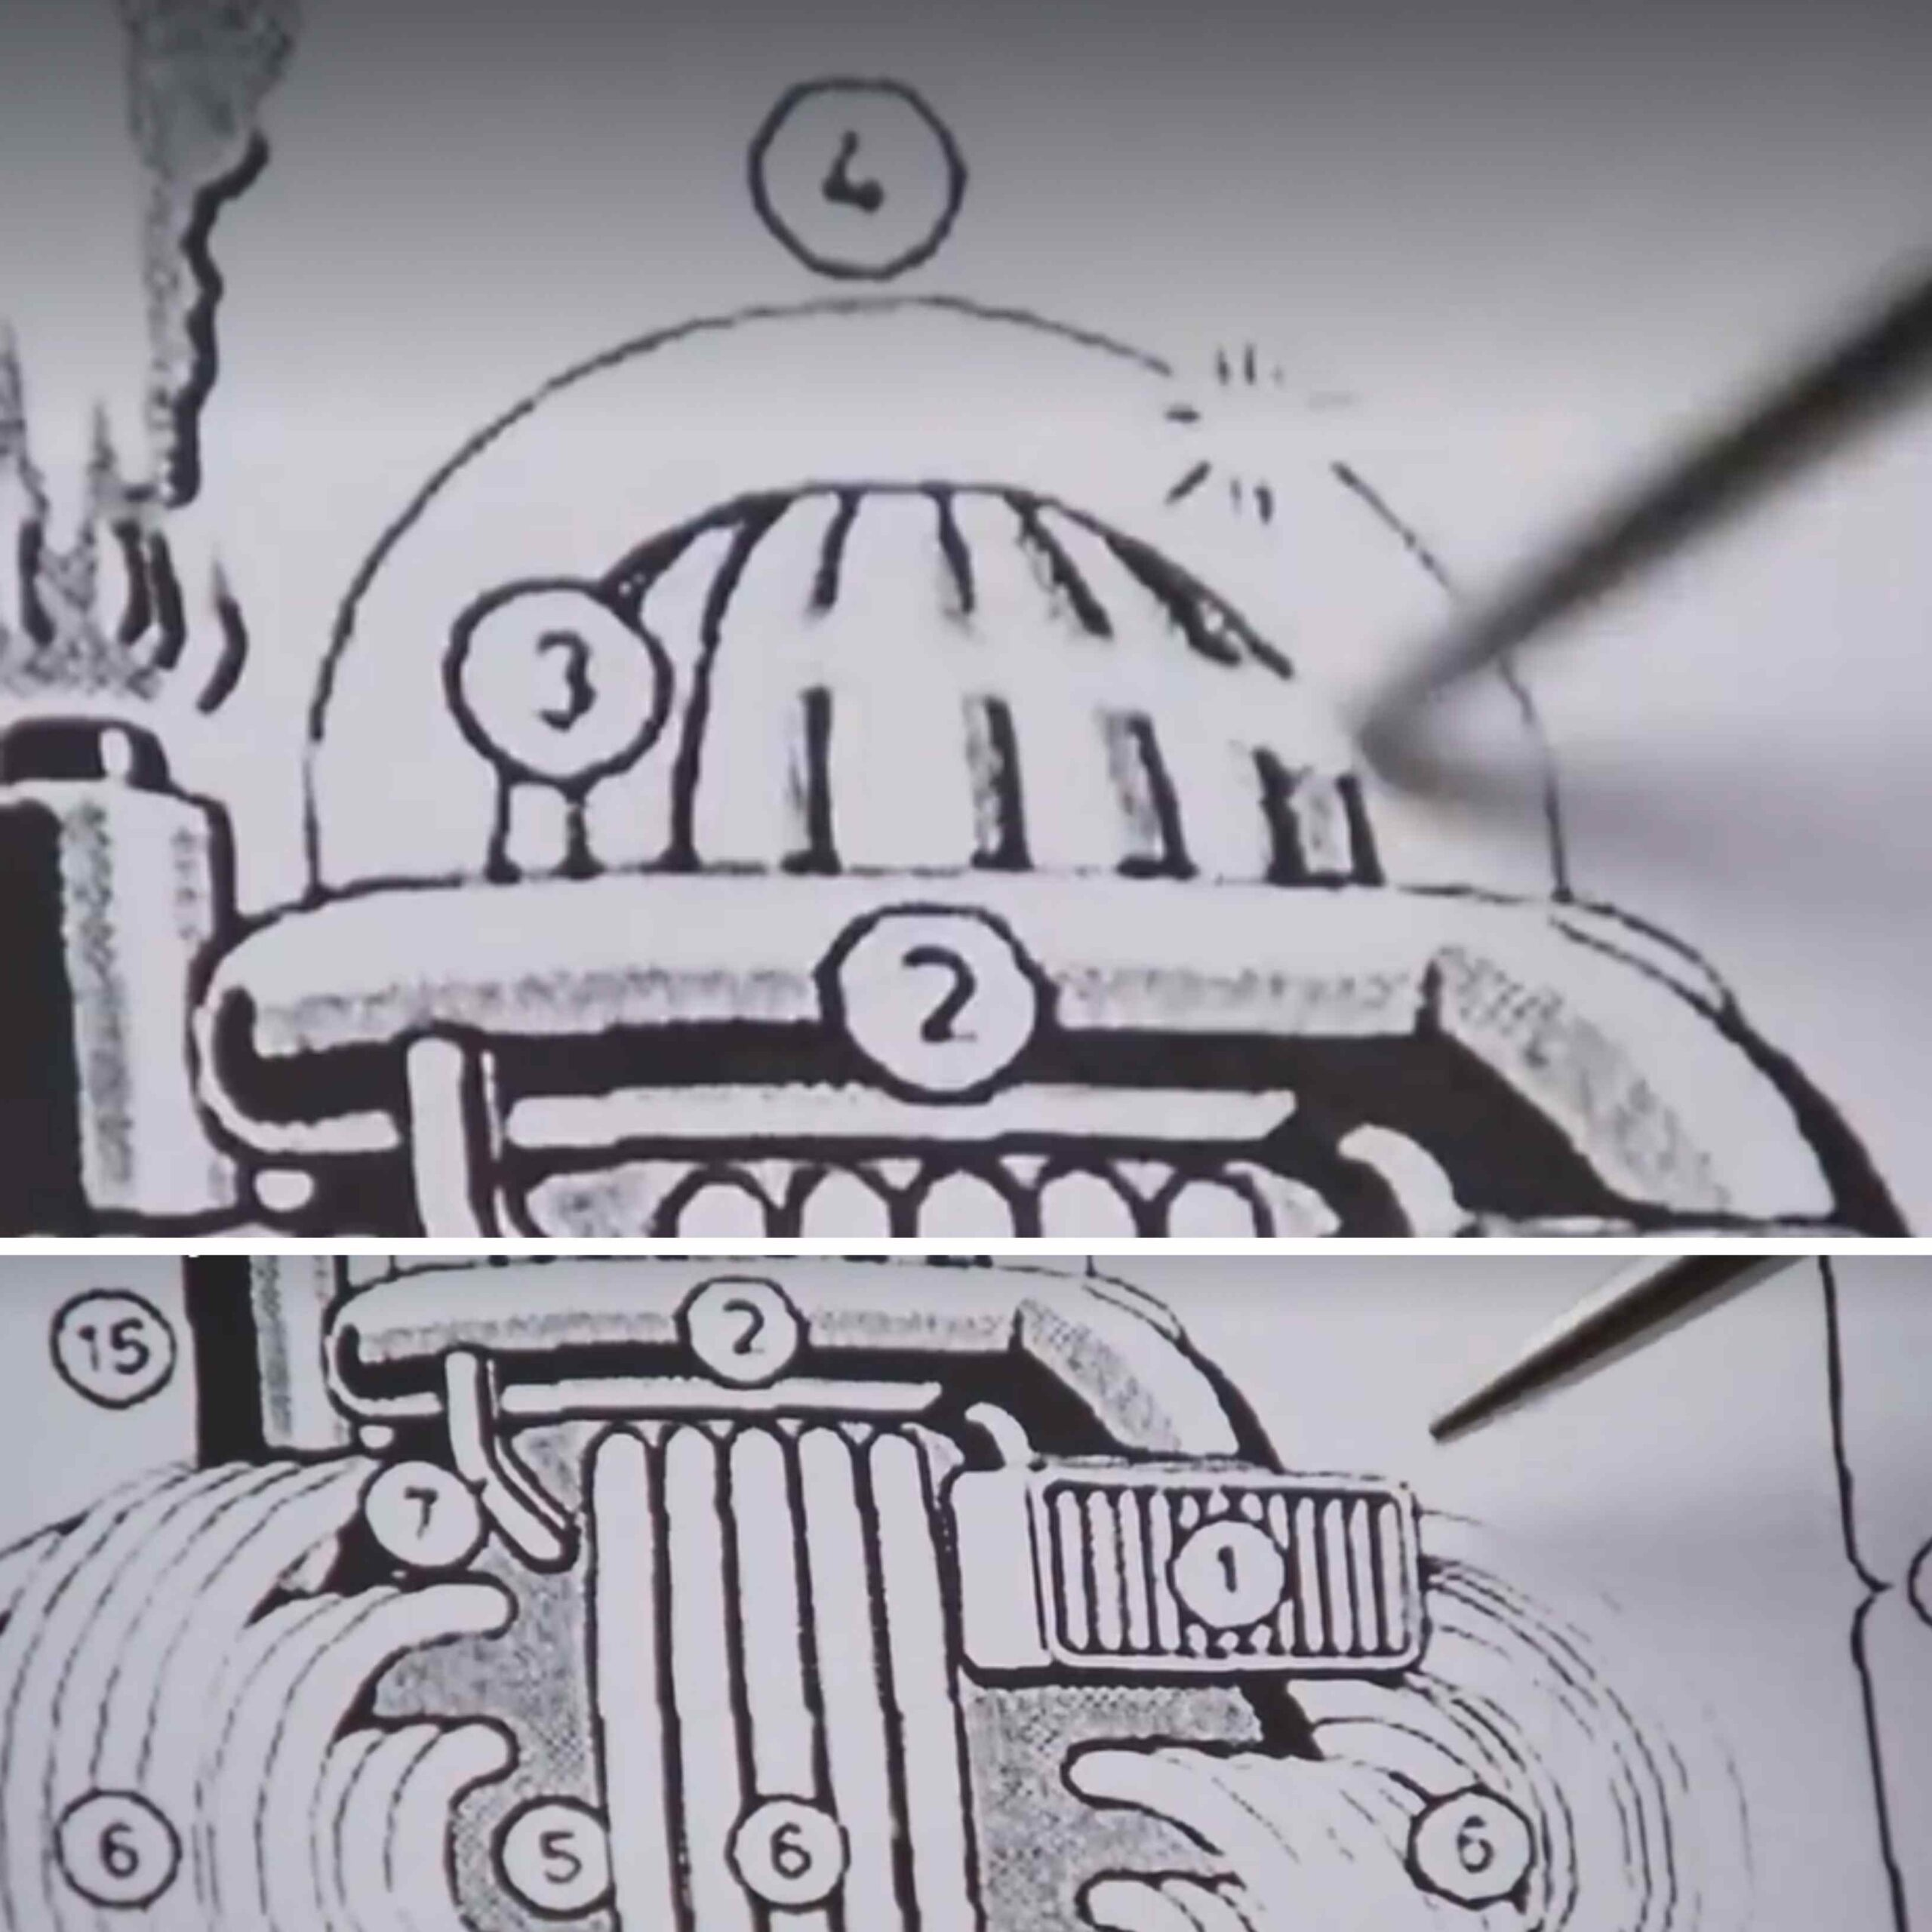 The Manna Machine: The mysterious alien machine that produced food for desert people 7